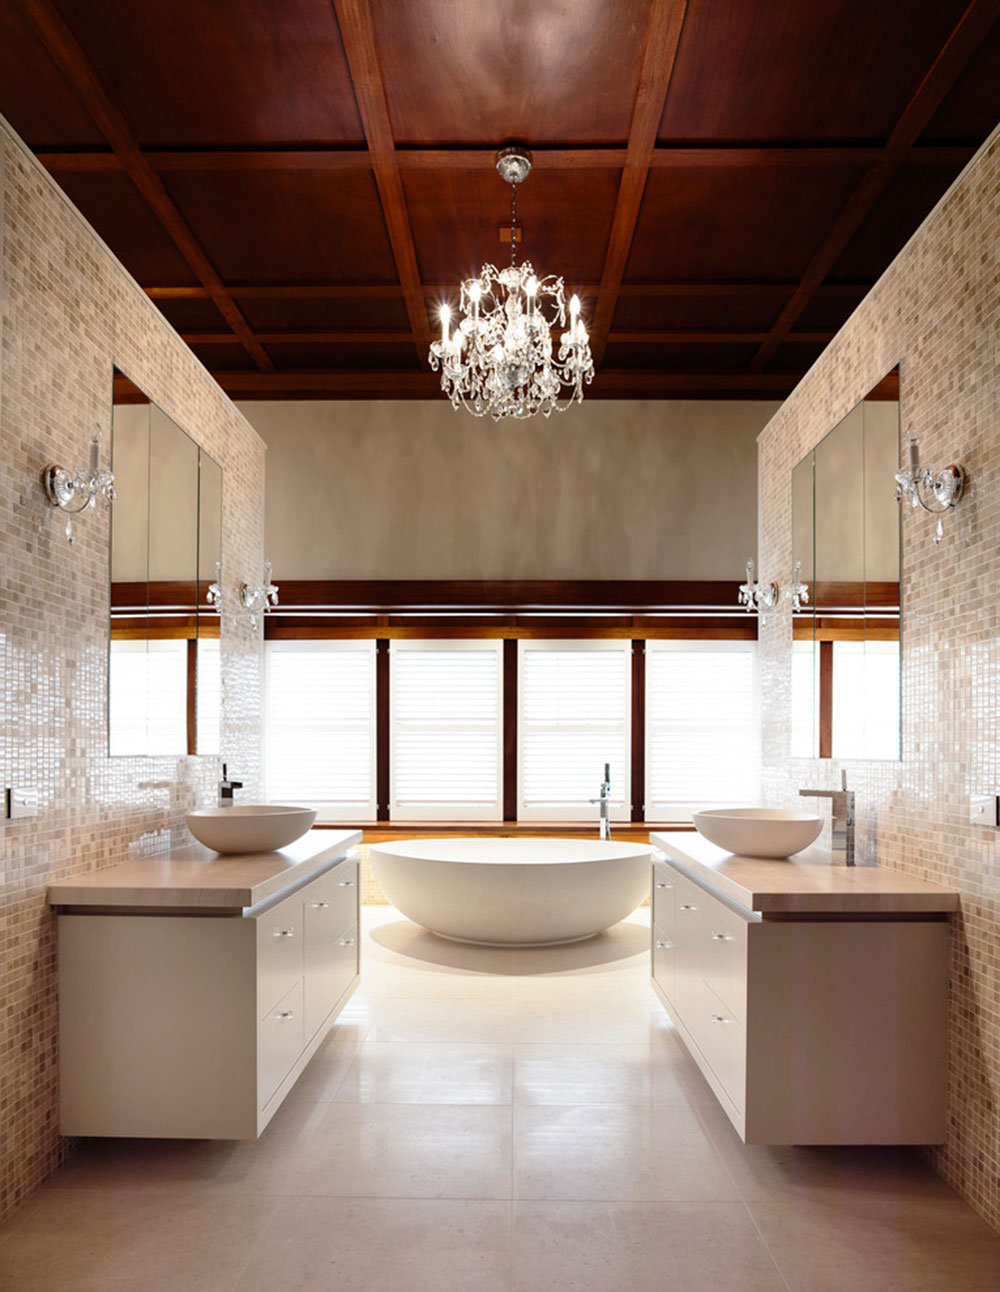 Photos-and-examples-of-choosing-the-best-bathroom-tiles-10 photos and examples of choosing the best bathroom tiles